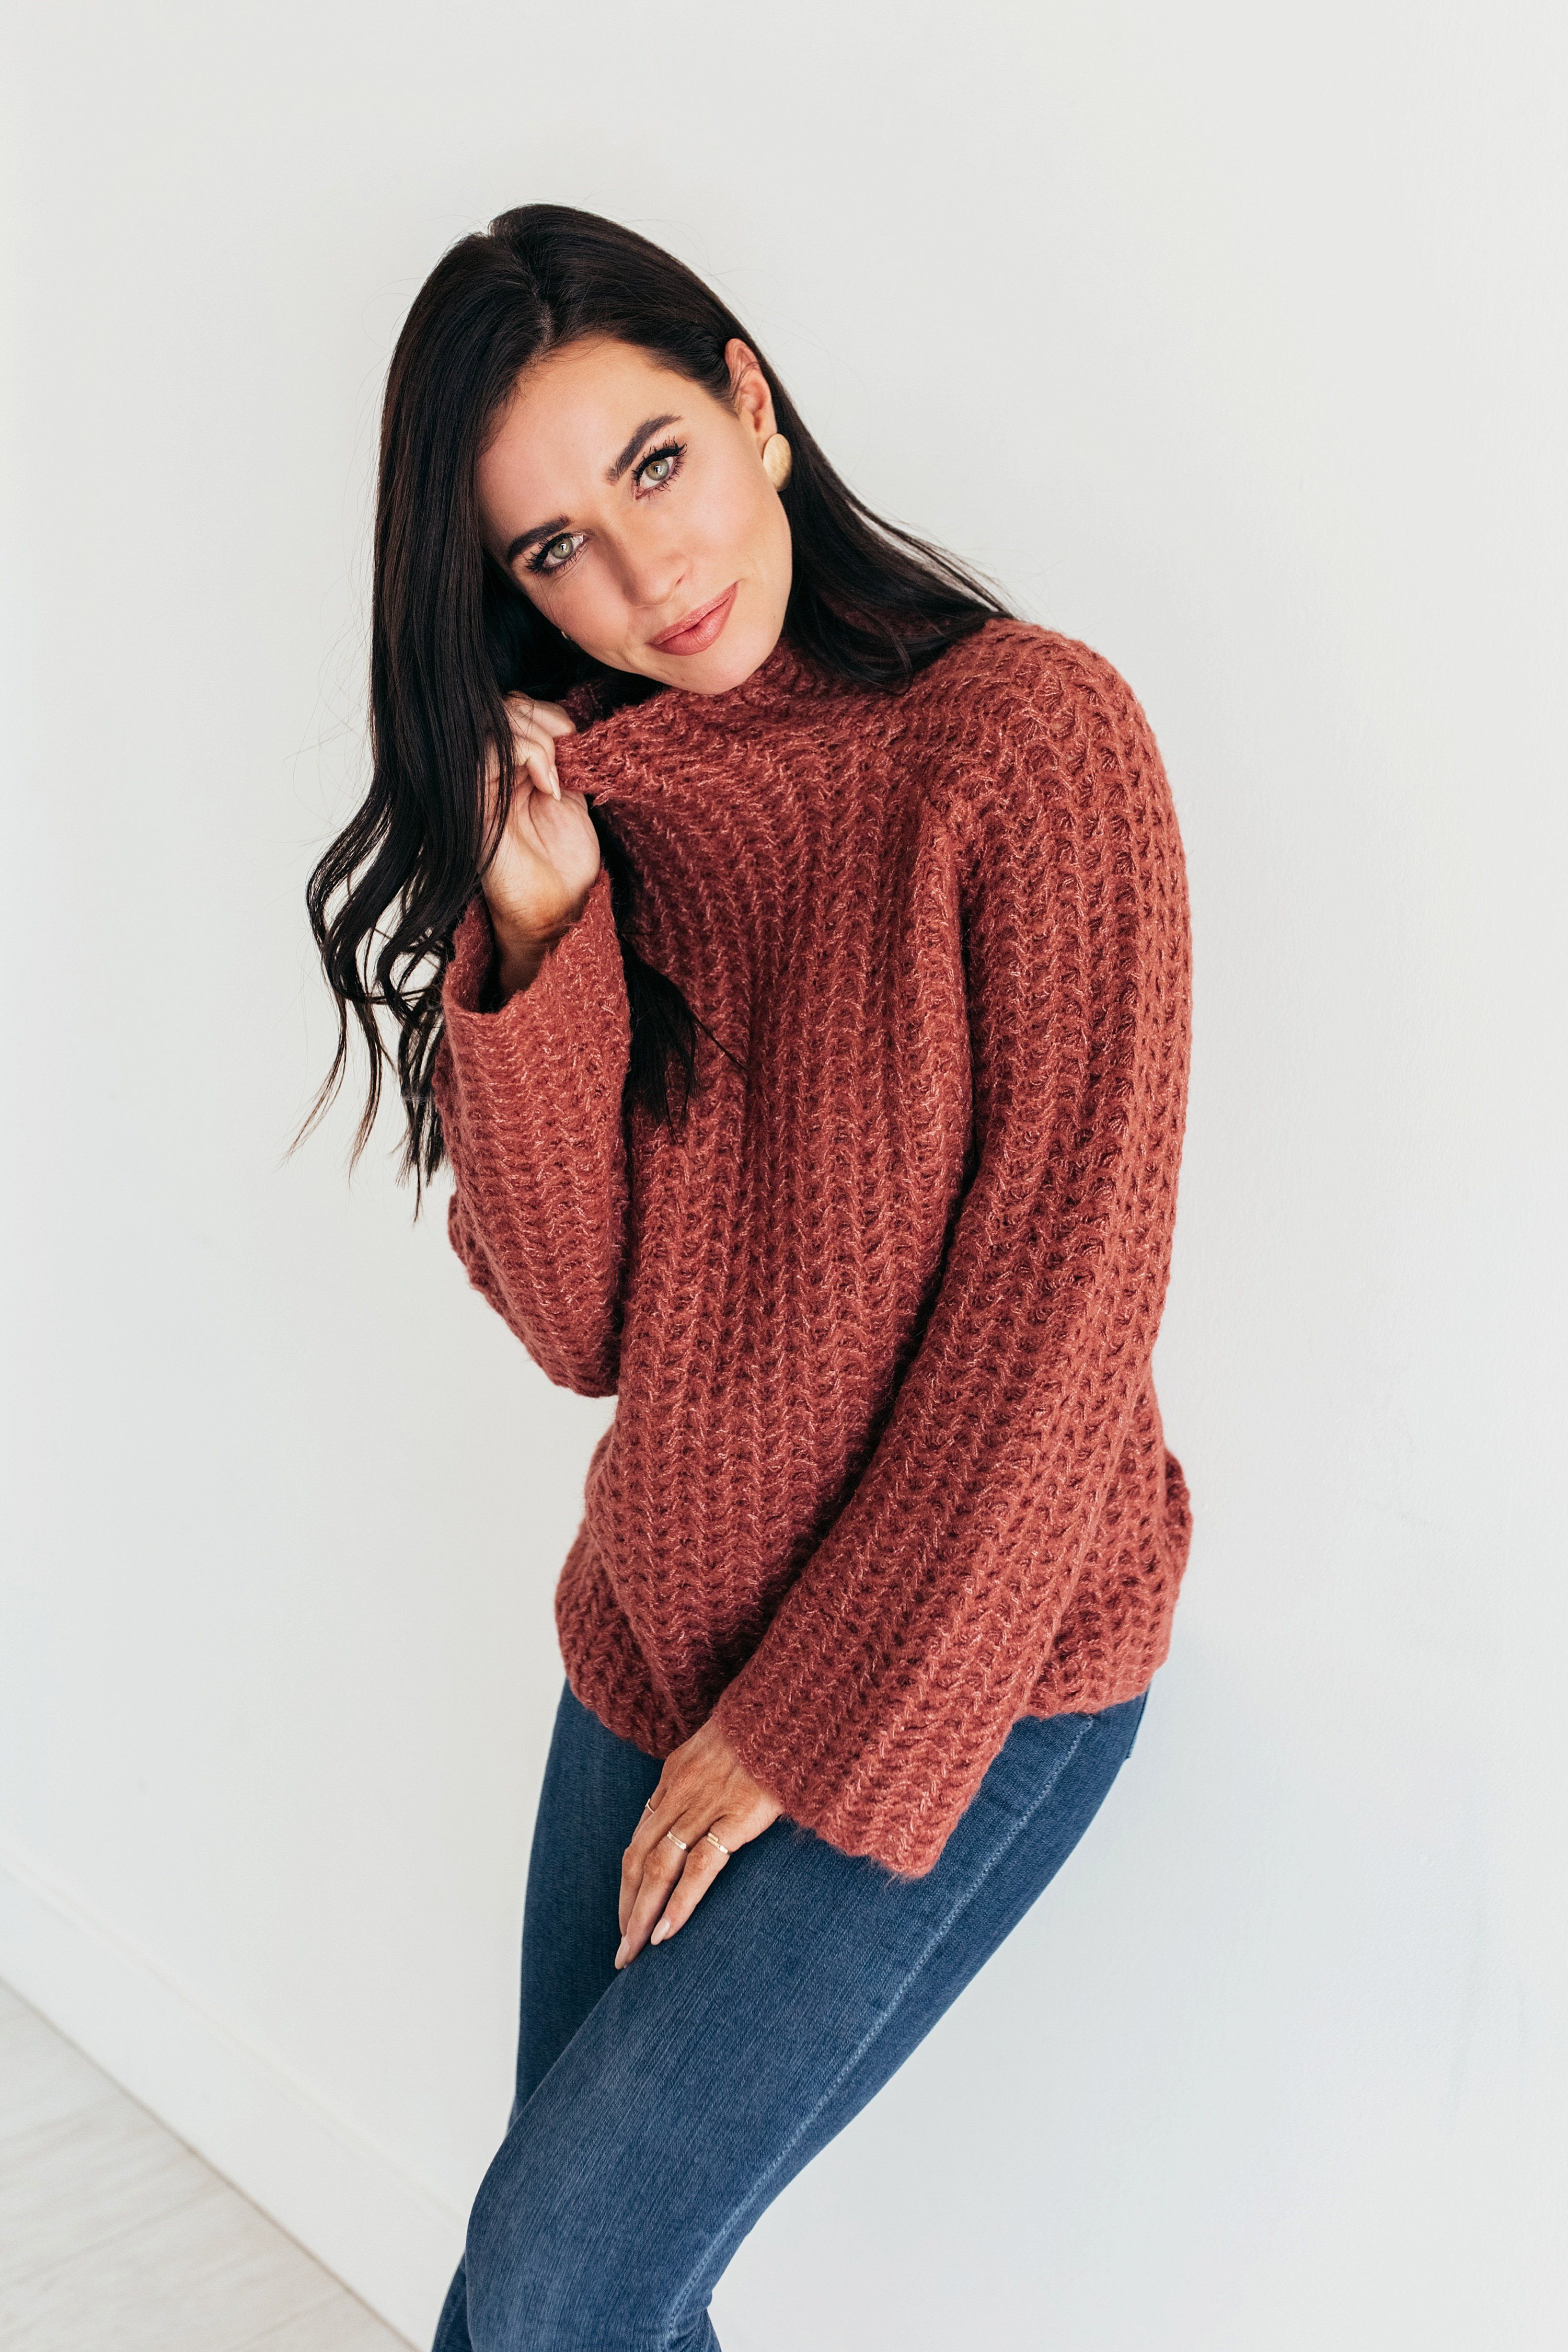 Fabal Turtleneck Men Winter Casual Long Sleeve Solid Knitted Sweater Pullover Tops Blouse